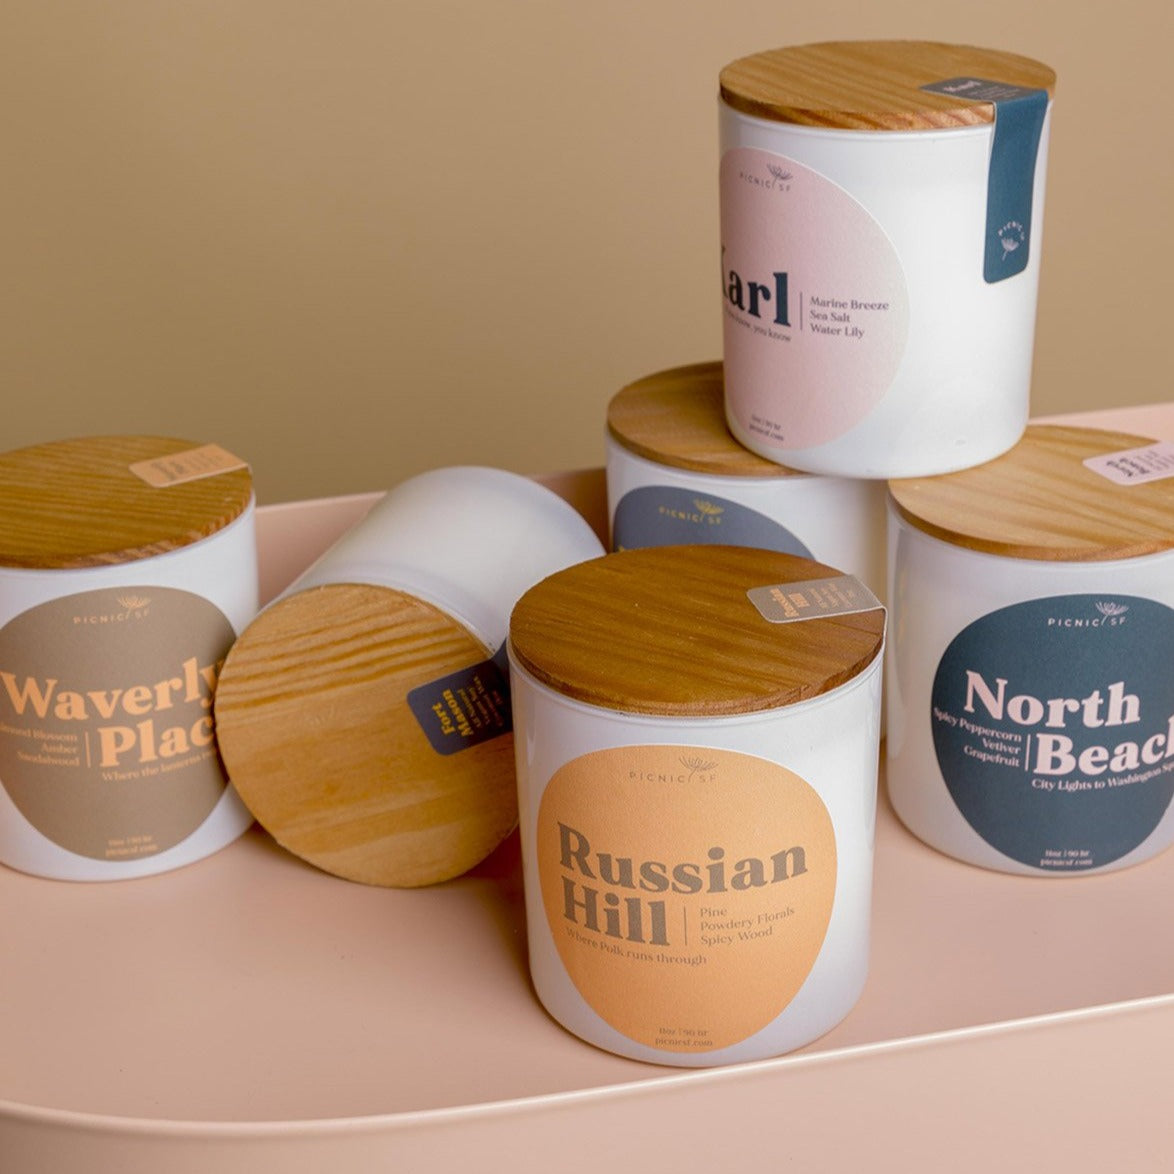 waverly place candle is a picnic exclusive San Francisco candle available at Picnic SF